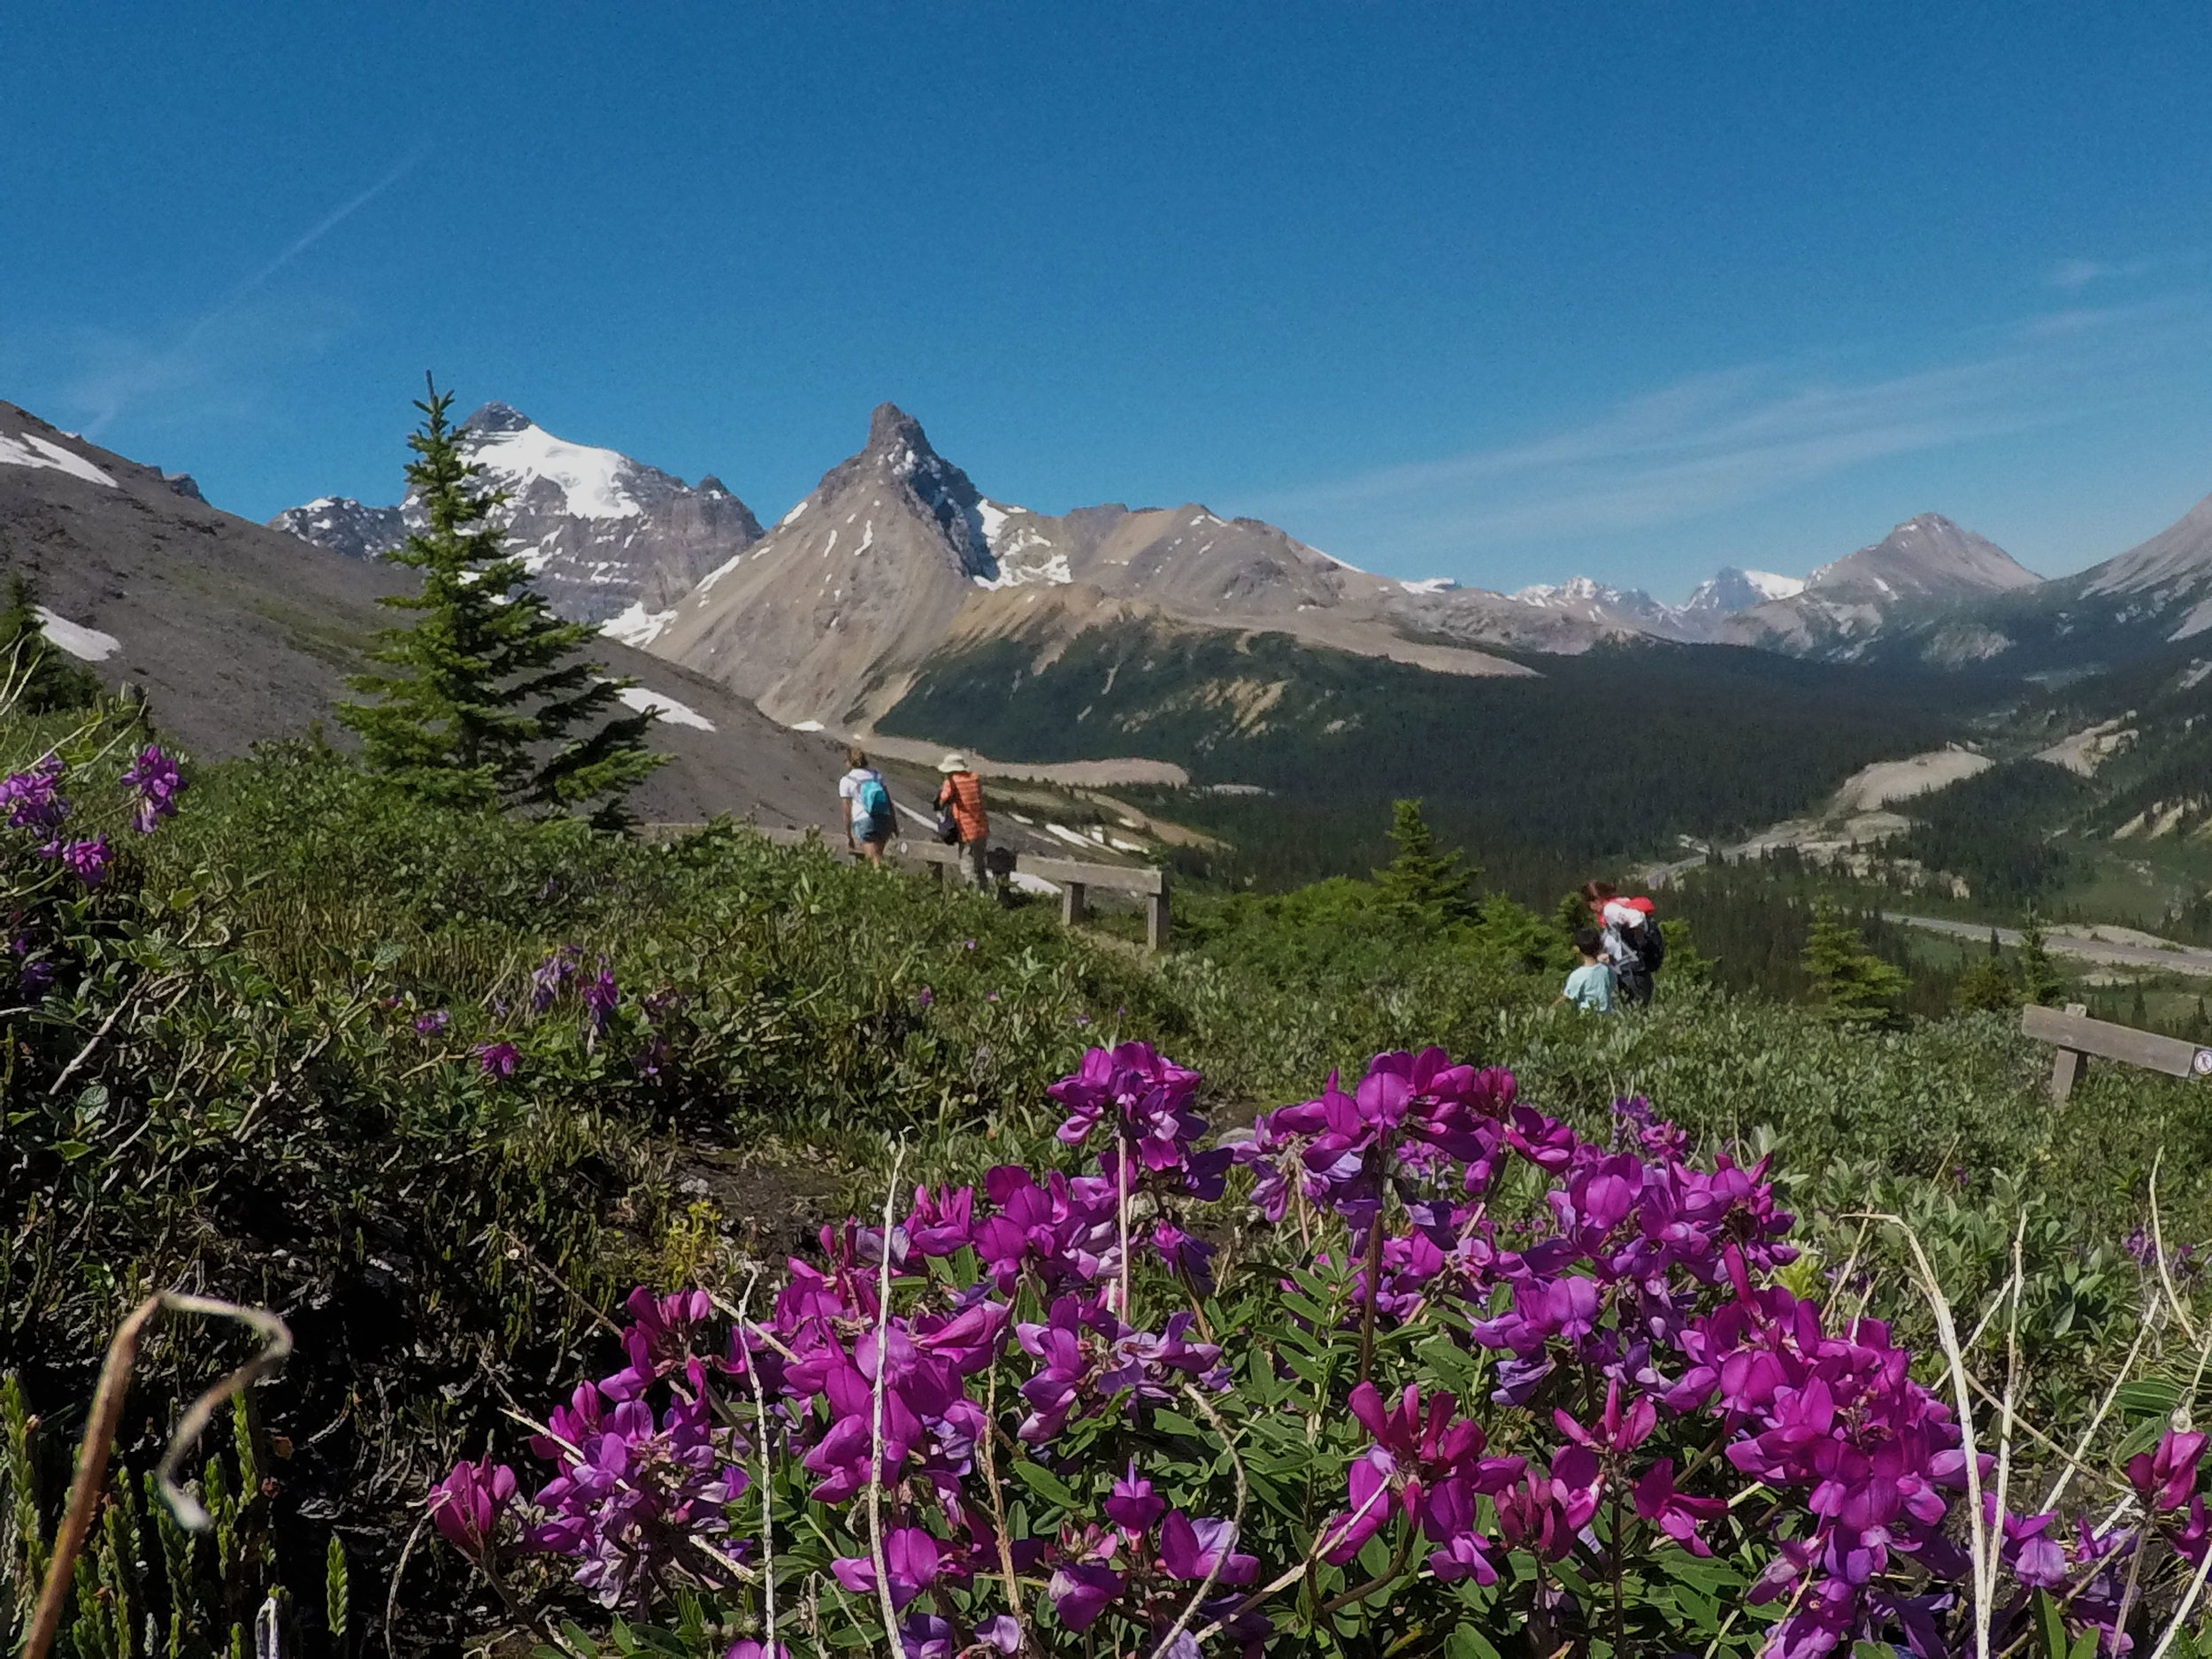 Hiking off the beaten path in the Rockies on a guided tour.